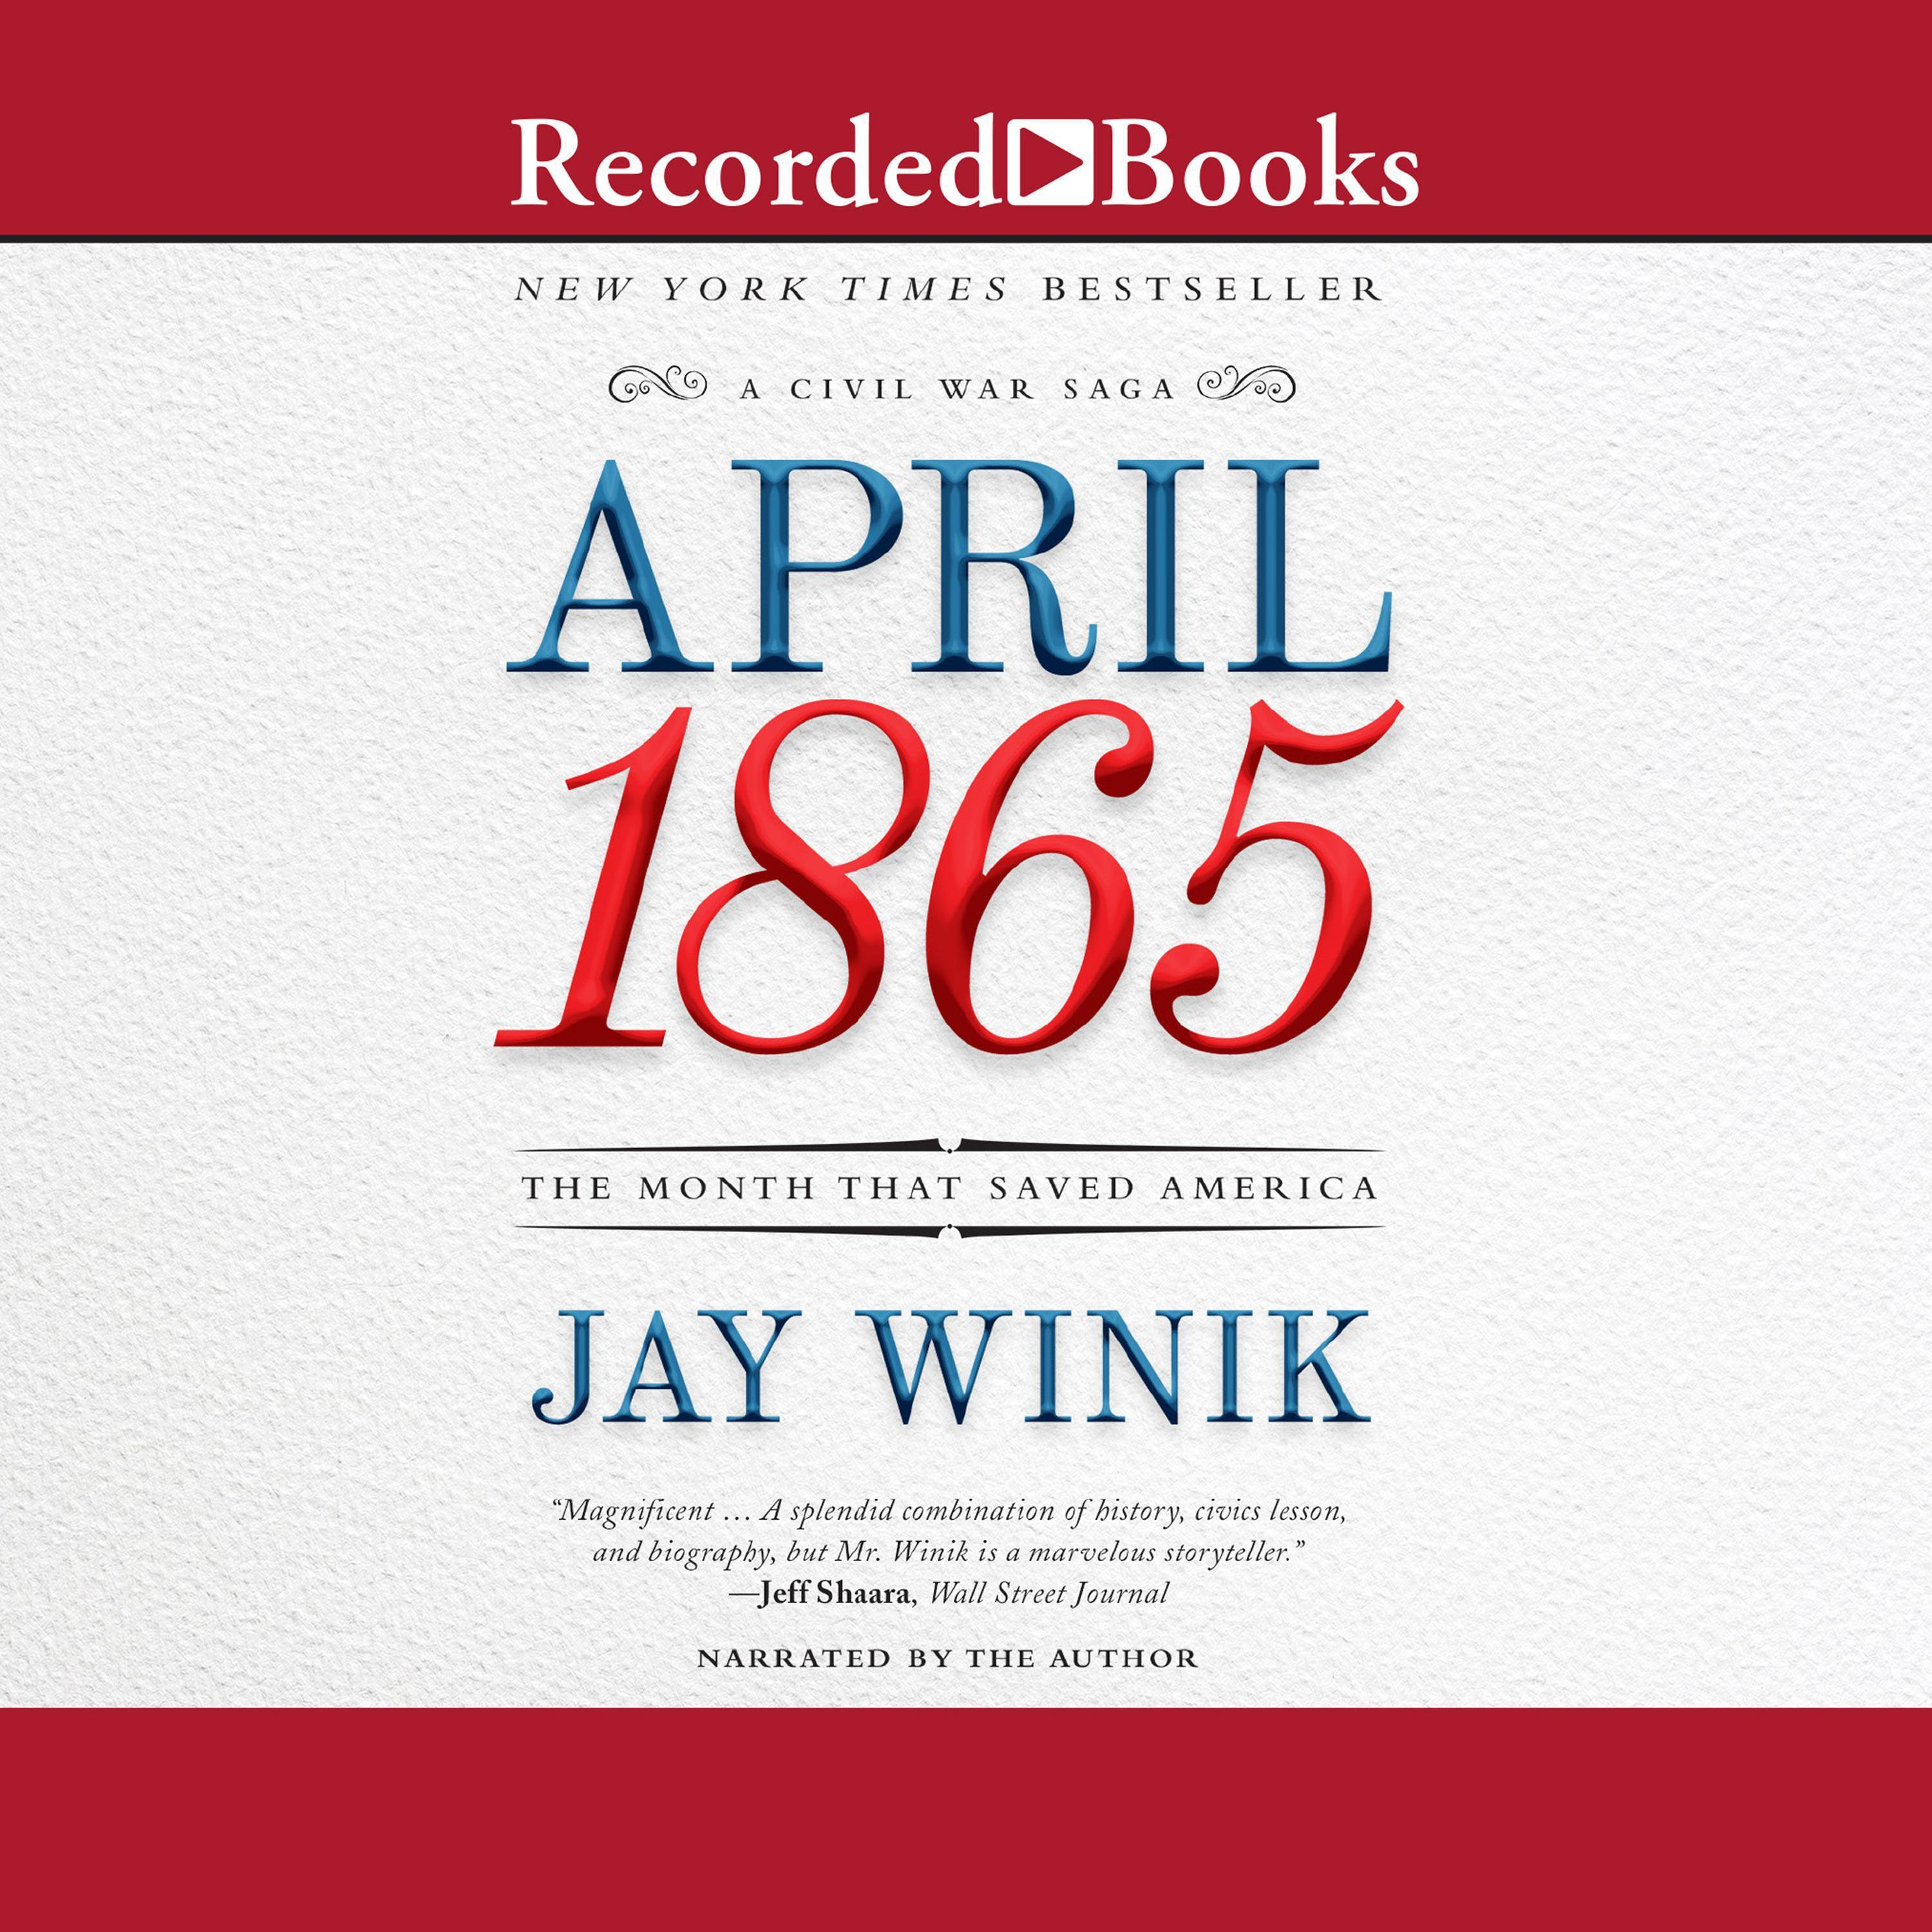 April 1865 The Month That Saved America By Jay Winik